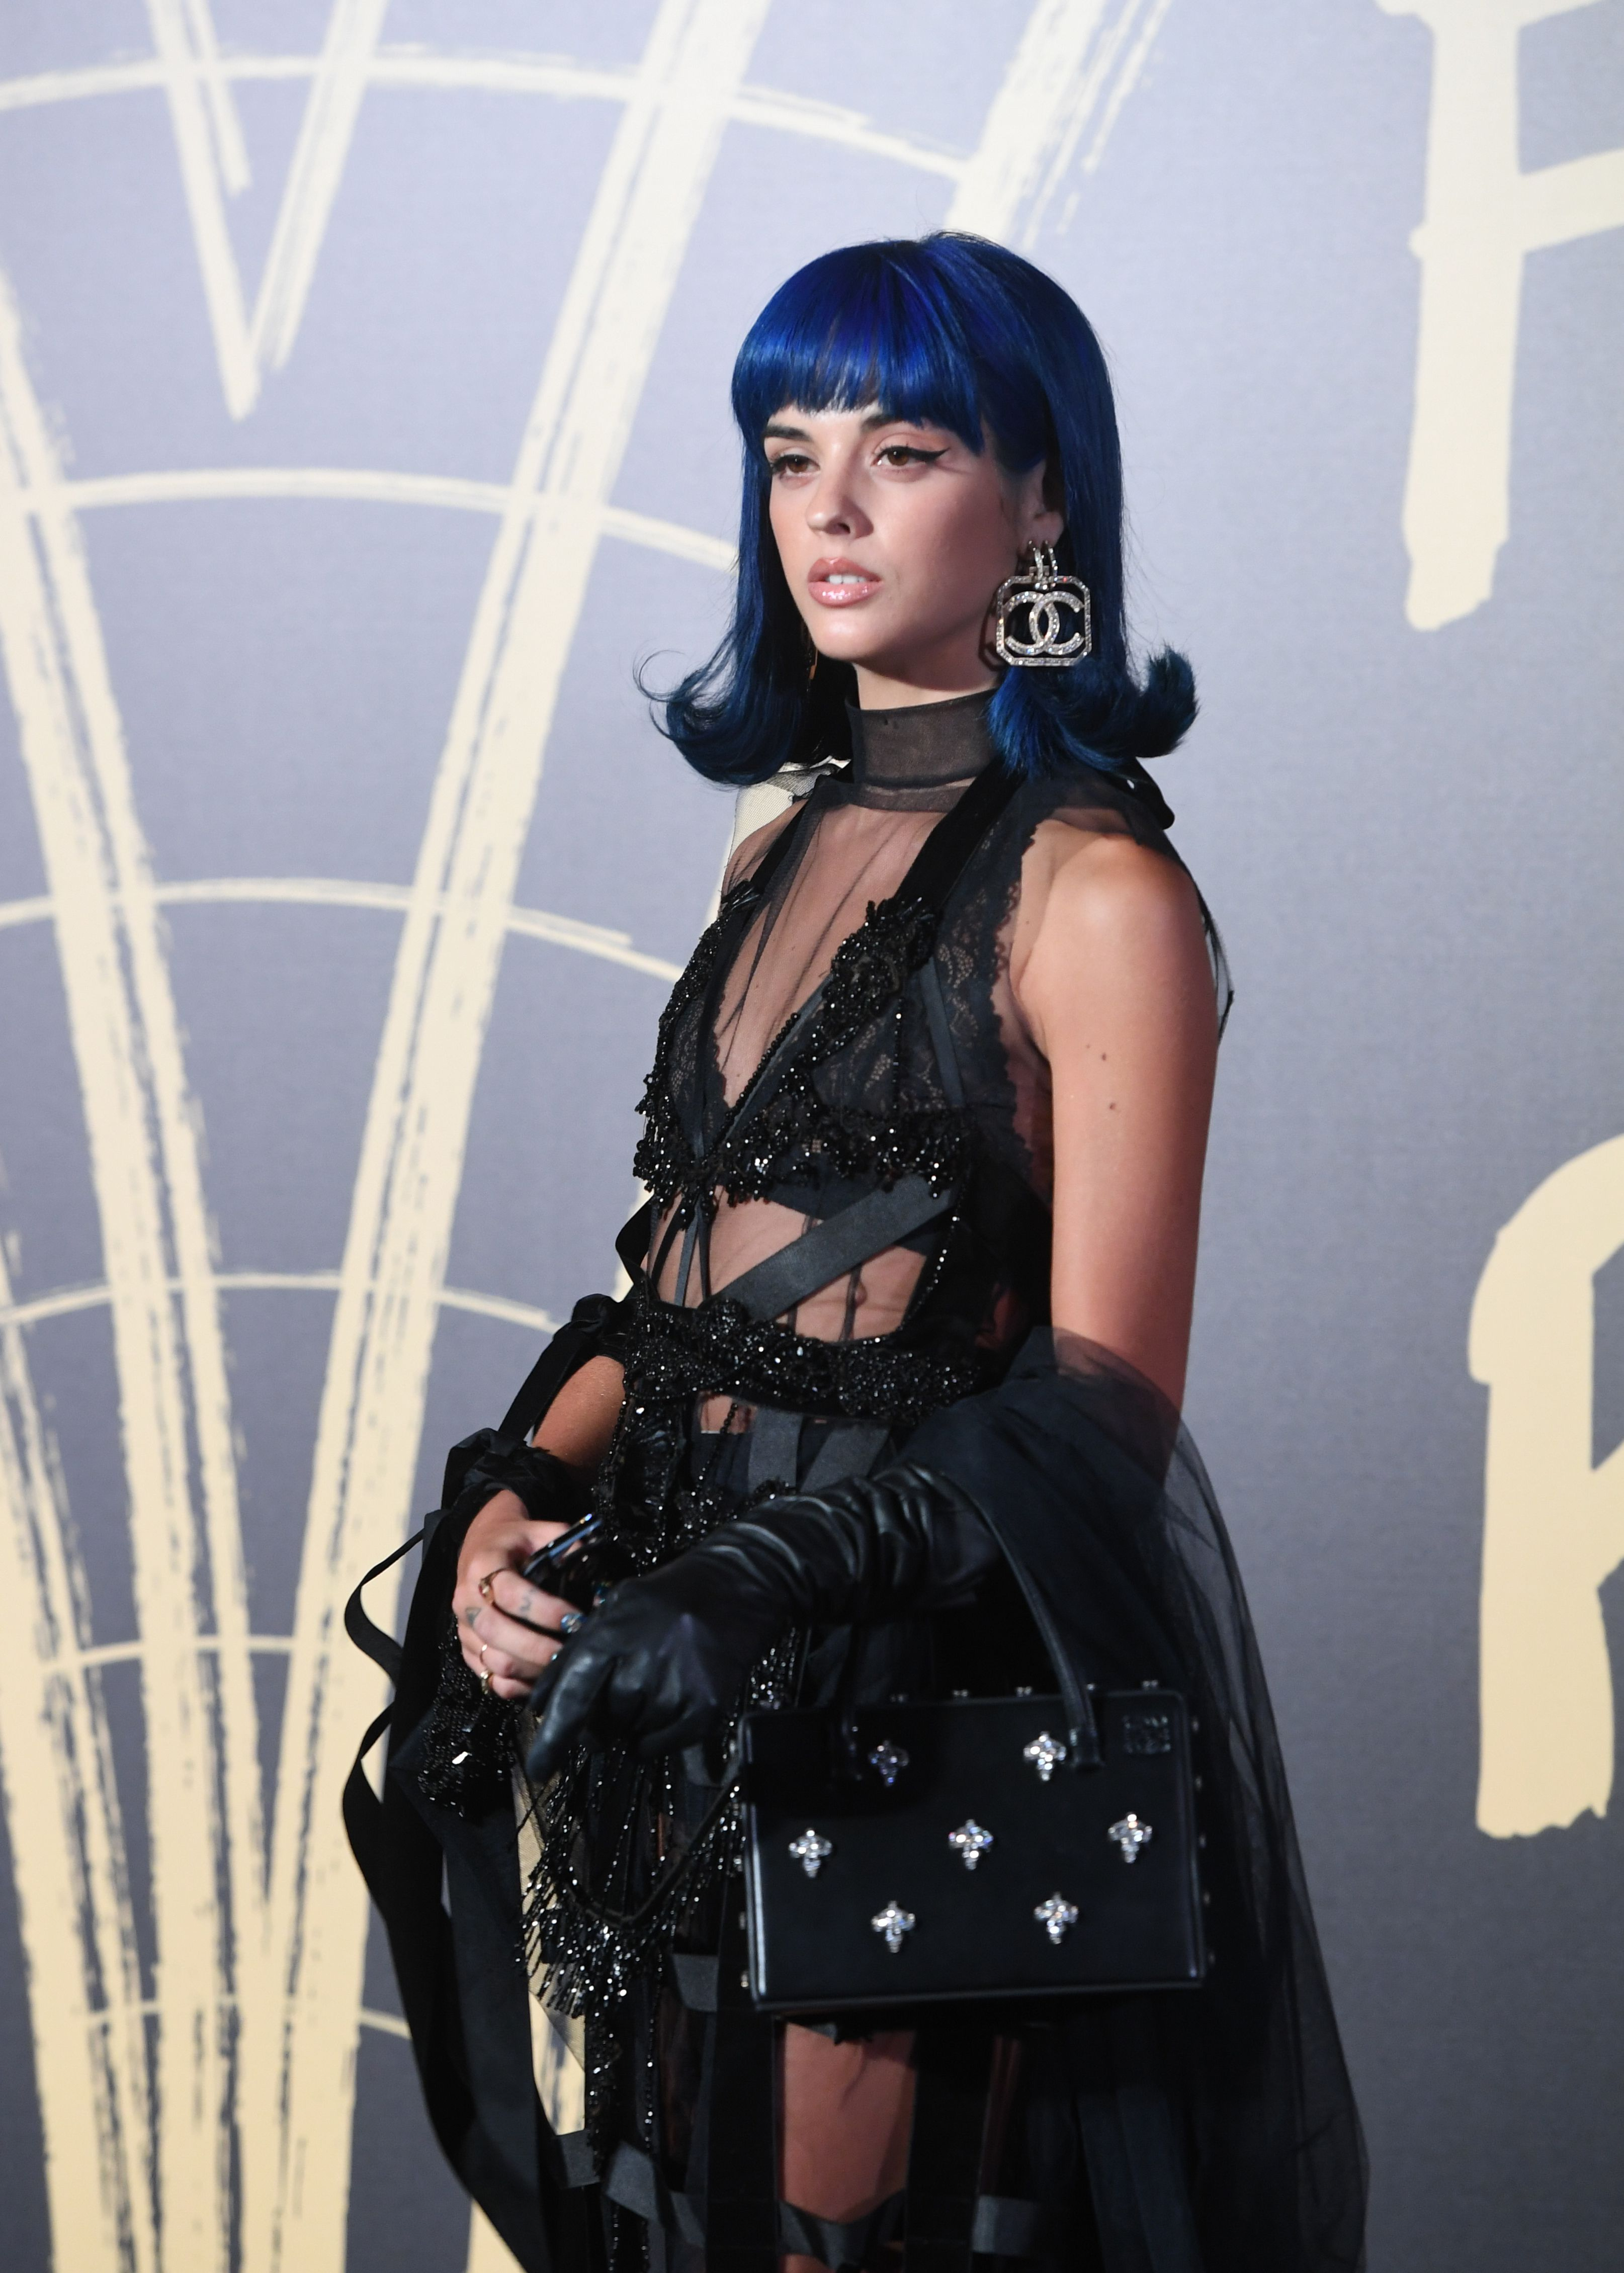 Spanish DJ Sita Abellan on the red carpet of the Fashion For Relief charity gala during London Fashion Week in London, Britain, 14 September 2019. Spring/summer 2020 collections are presented at the fashion week, which runs from 13 September to 17 September 2019.Fashion for relief gala red carpet at the London Fashion Week S/S 2020, United Kingdom - 14 Sep 2019